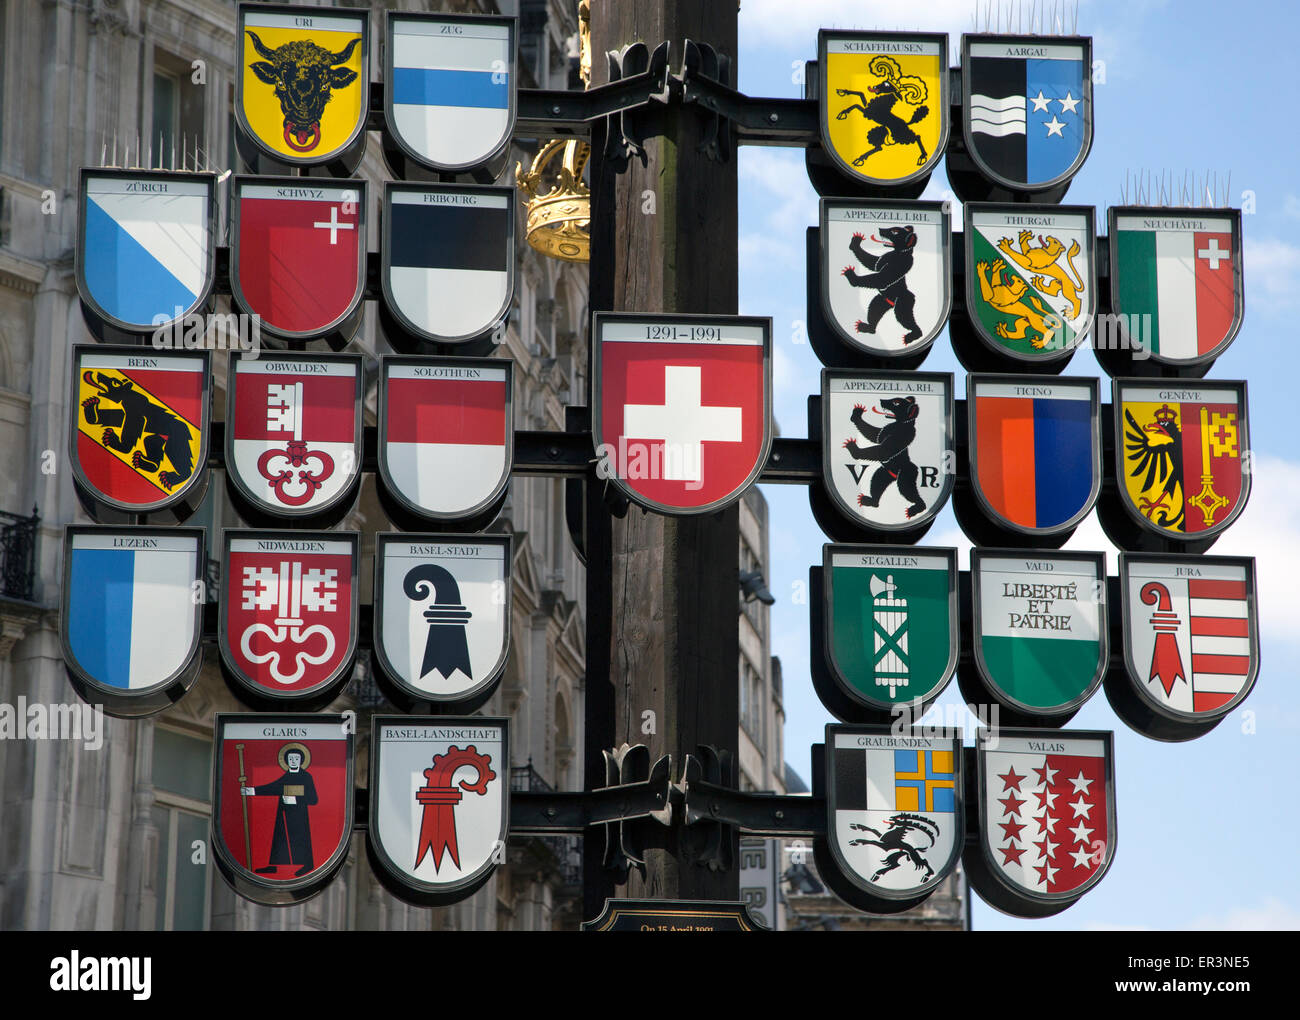 Cantonal Tree in Leicester Square London with coats of arms of 26 cantons of Switzerland - Stock Image